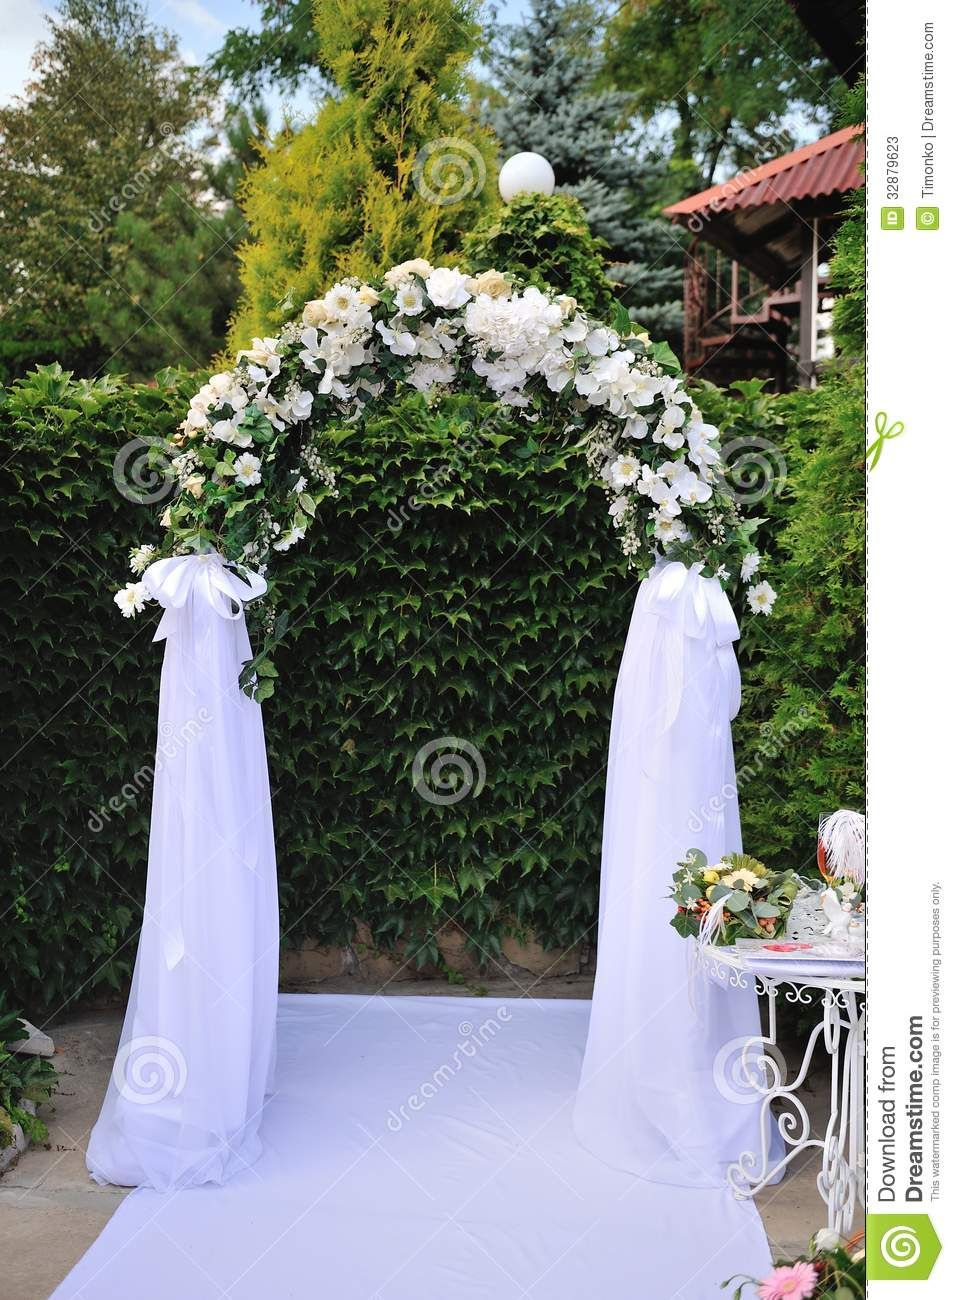 Wedding Arch  Download From Over 46 Million High Quality